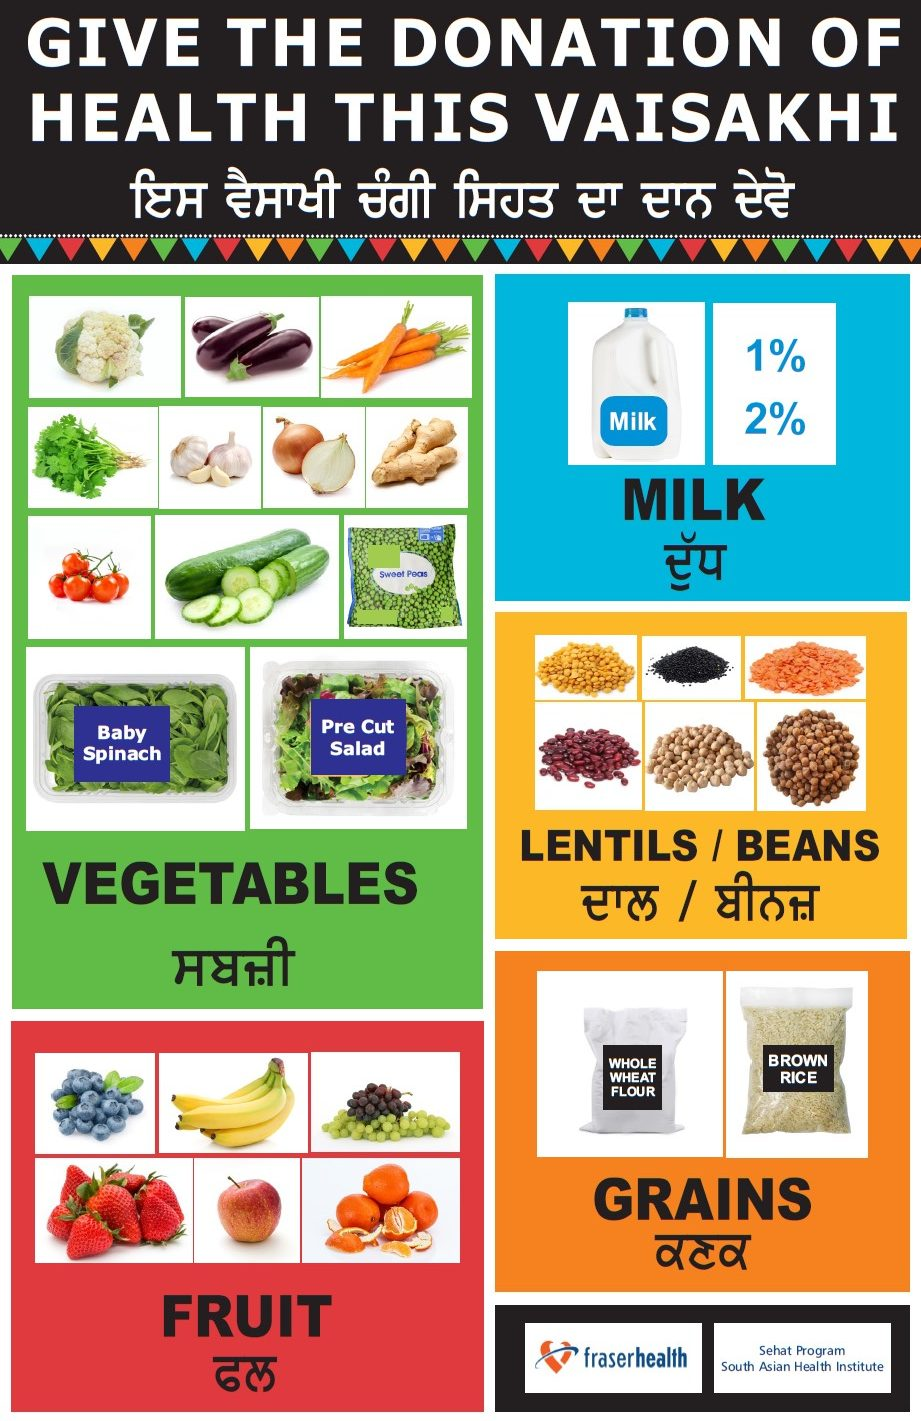 Healthy Eating and Food Safety At Vaisakhi - Smart Tips From